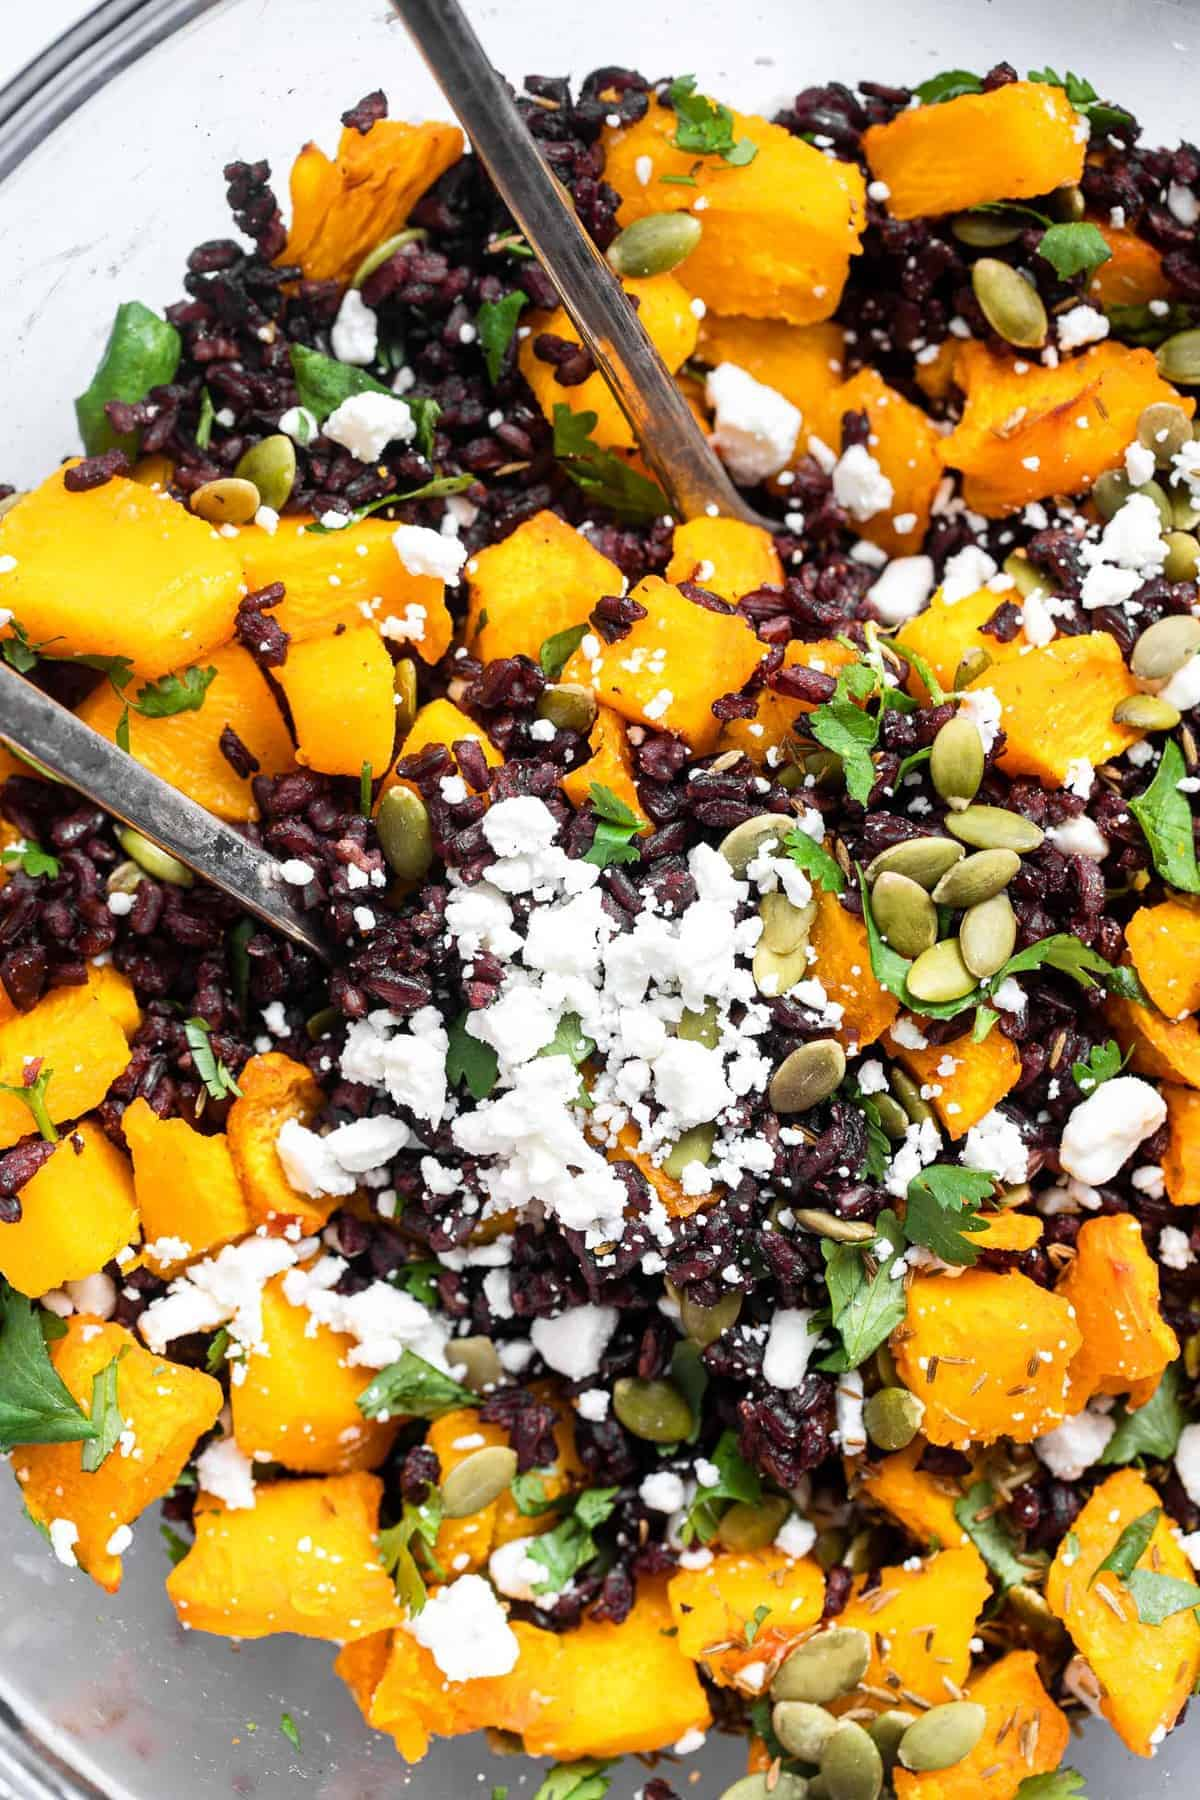 Black rice salad with roasted pumpkin in a bowl